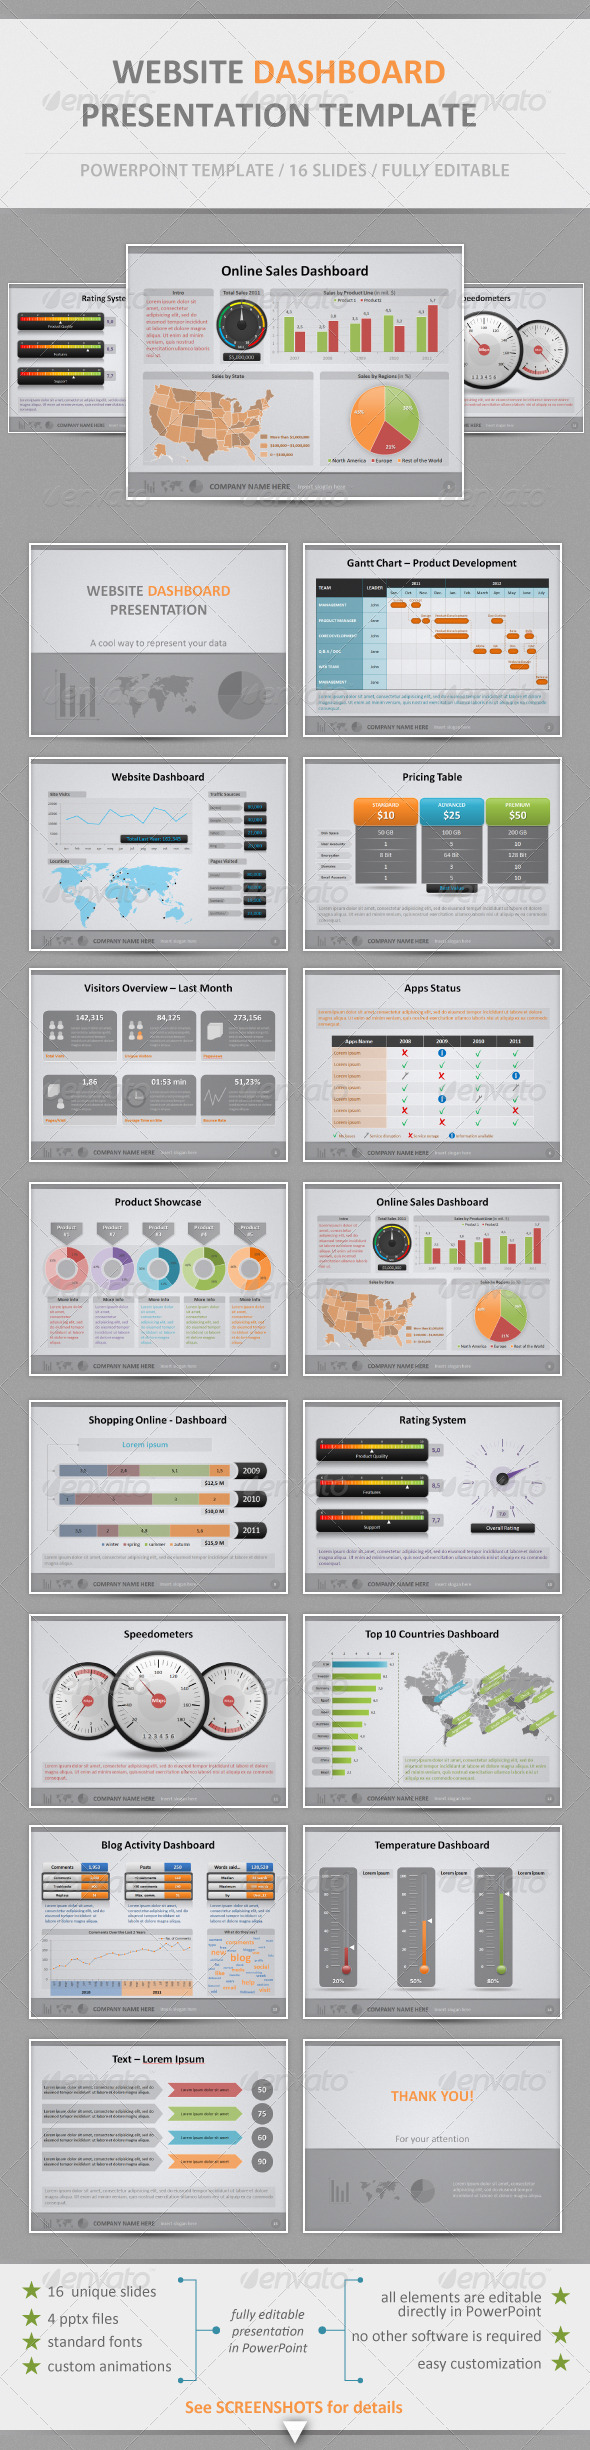 Website Dashboard Presentation Template - Creative Powerpoint Templates